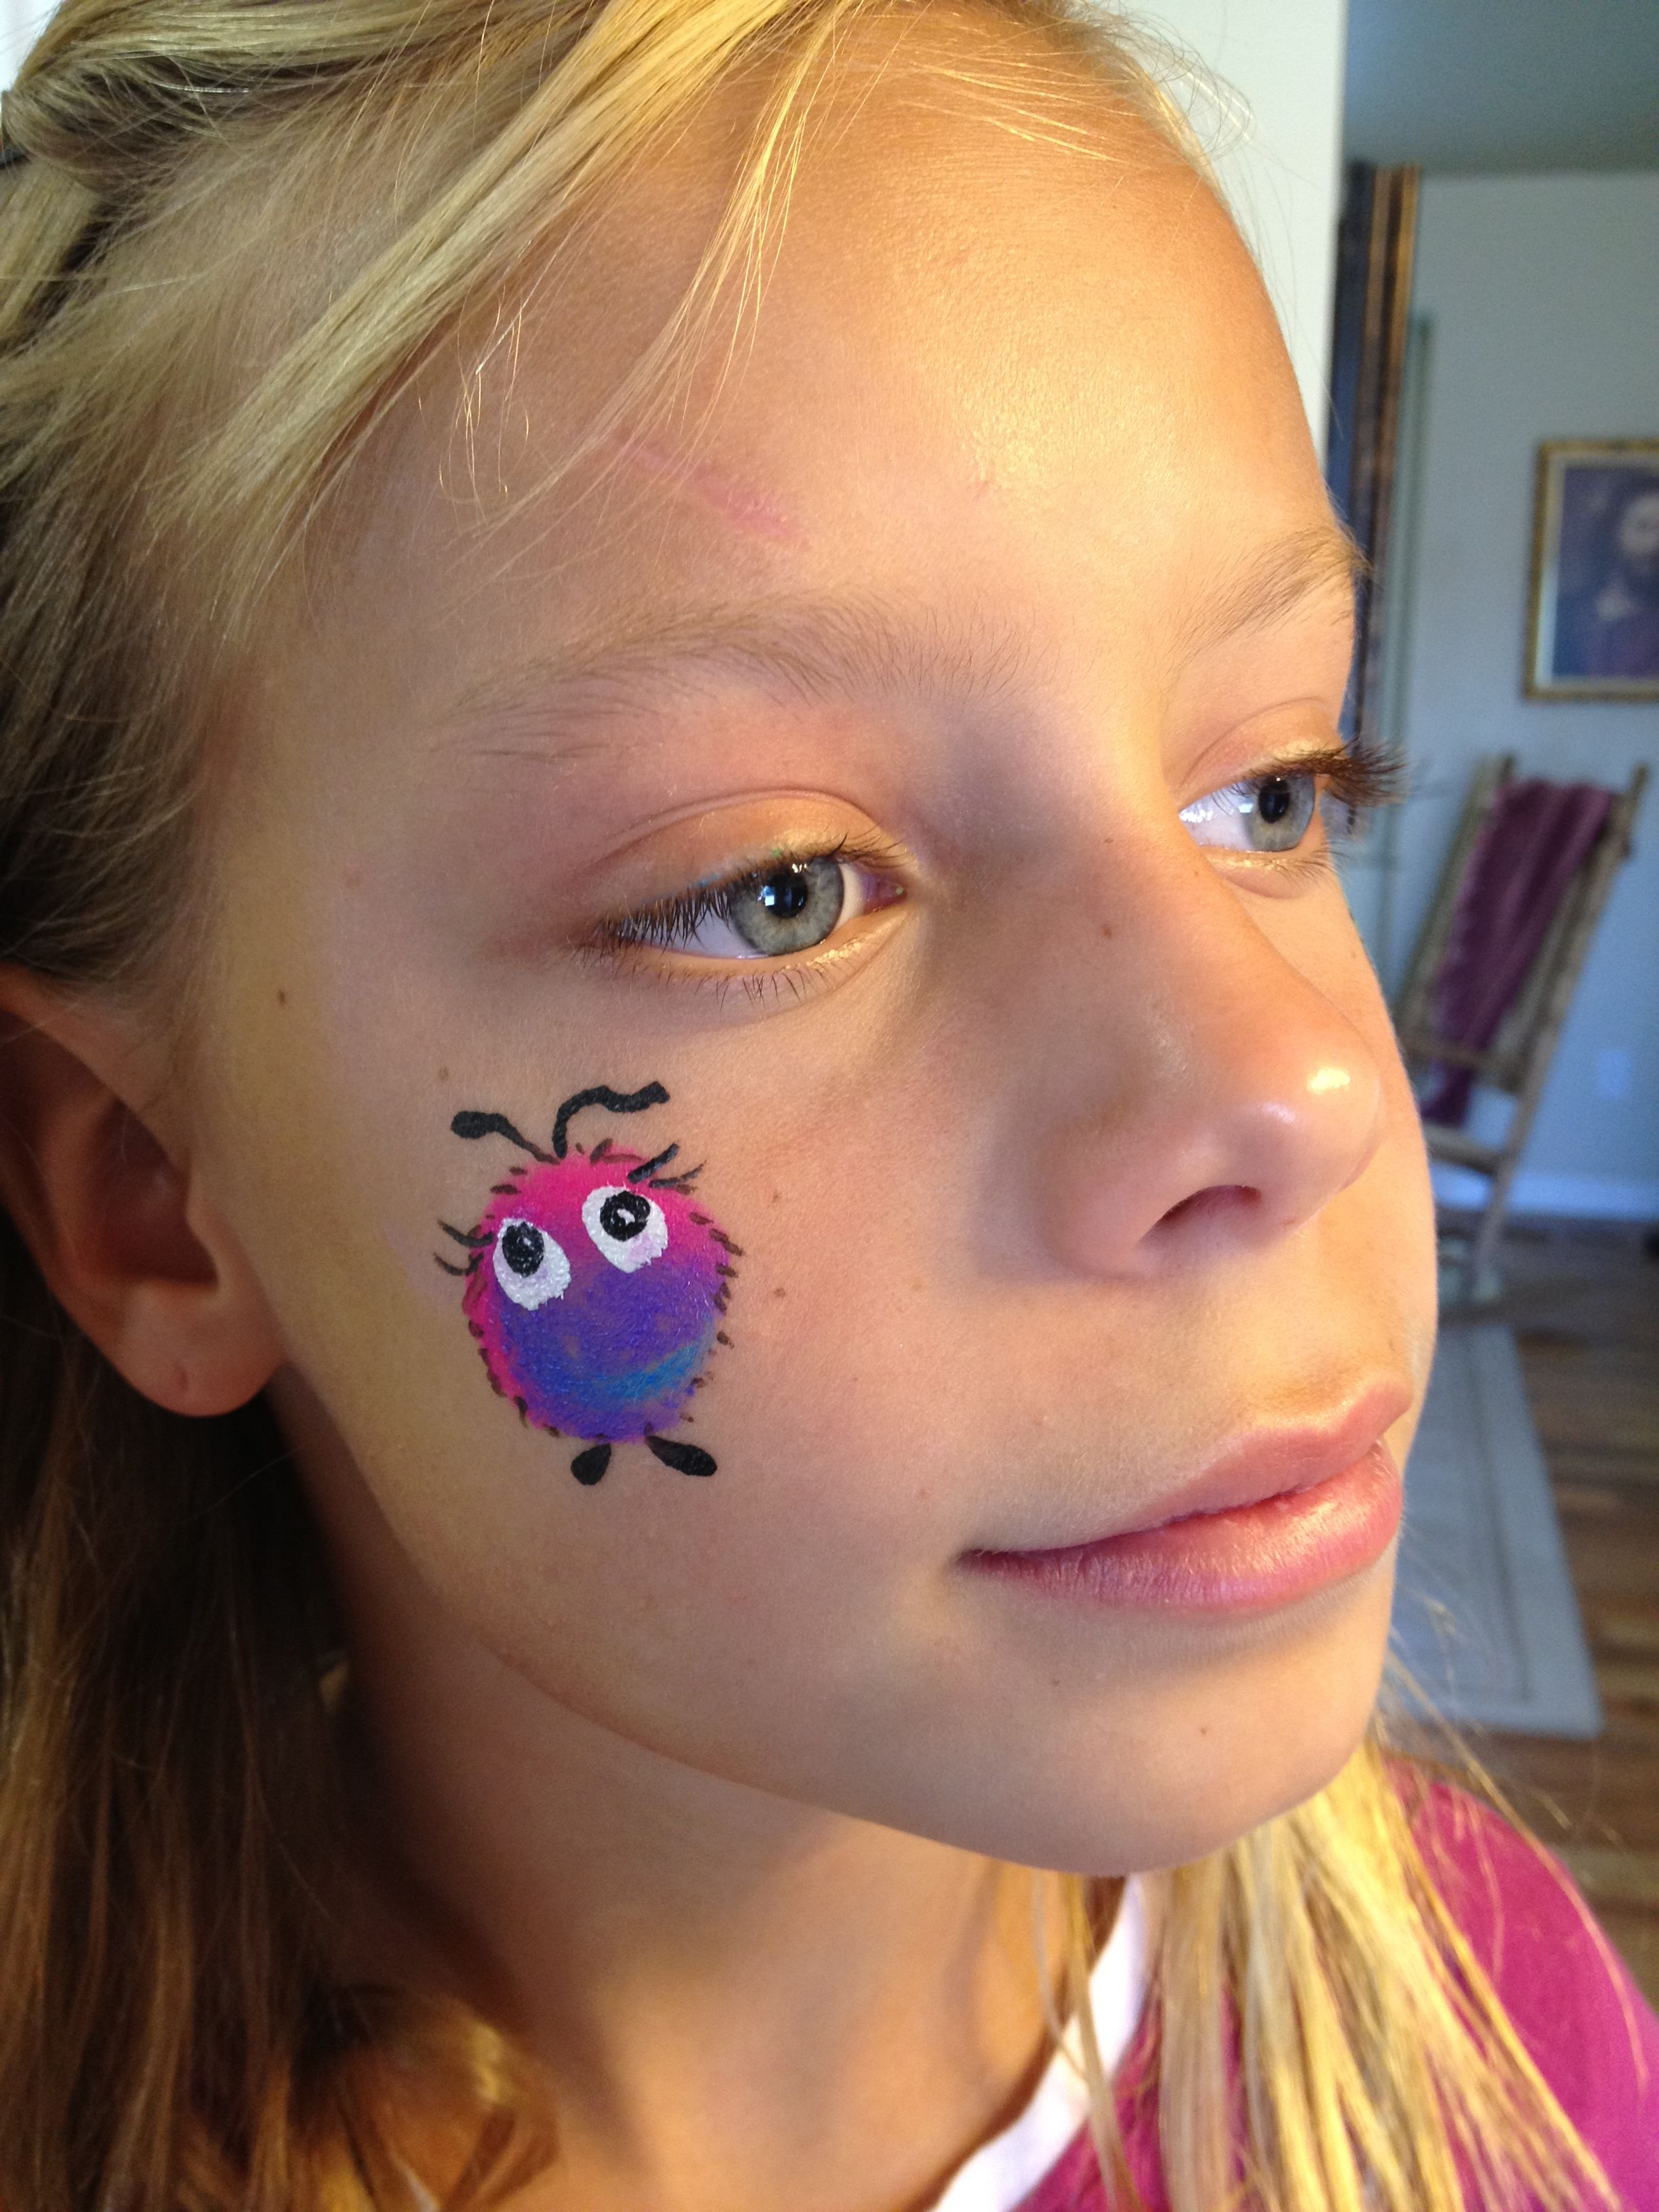 The Other Cheek Face Painting and More! - Sacramento, CA